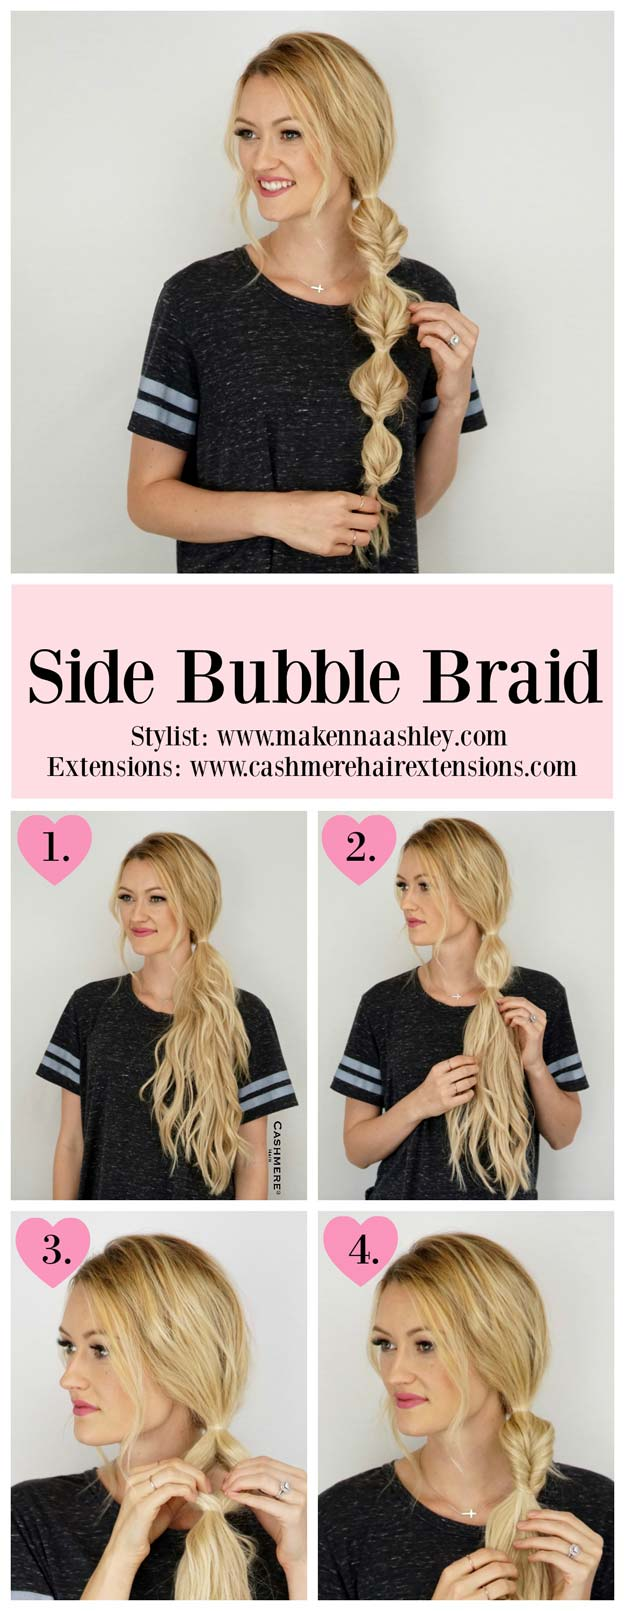 Best Hair Braiding Tutorials - Side Bubble Braid Tutorial - Easy Step by Step Tutorials for Braids - How To Braid Fishtail, French Braids, Flower Crown, Side Braids, Cornrows, Updos - Cool Braided Hairstyles for Girls, Teens and Women - School, Day and Evening, Boho, Casual and Formal Looks #hairstyles #braiding #braidingtutorials #diyhair